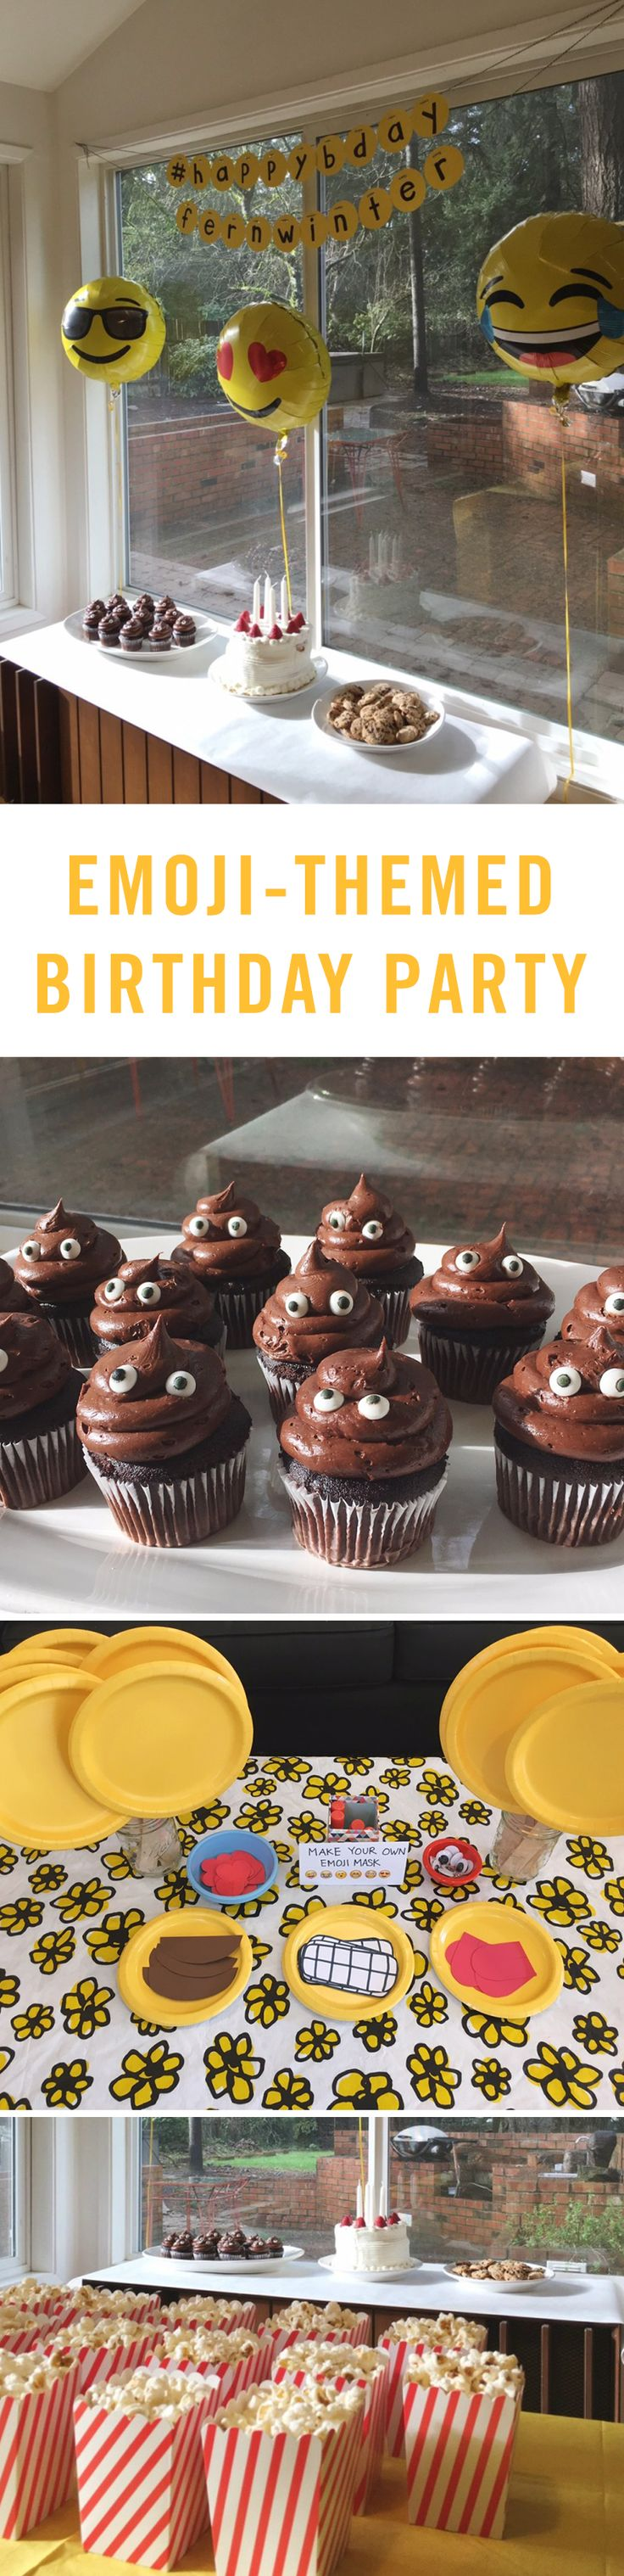 How to Throw the Ultimate Emoji-Themed Birthday Party